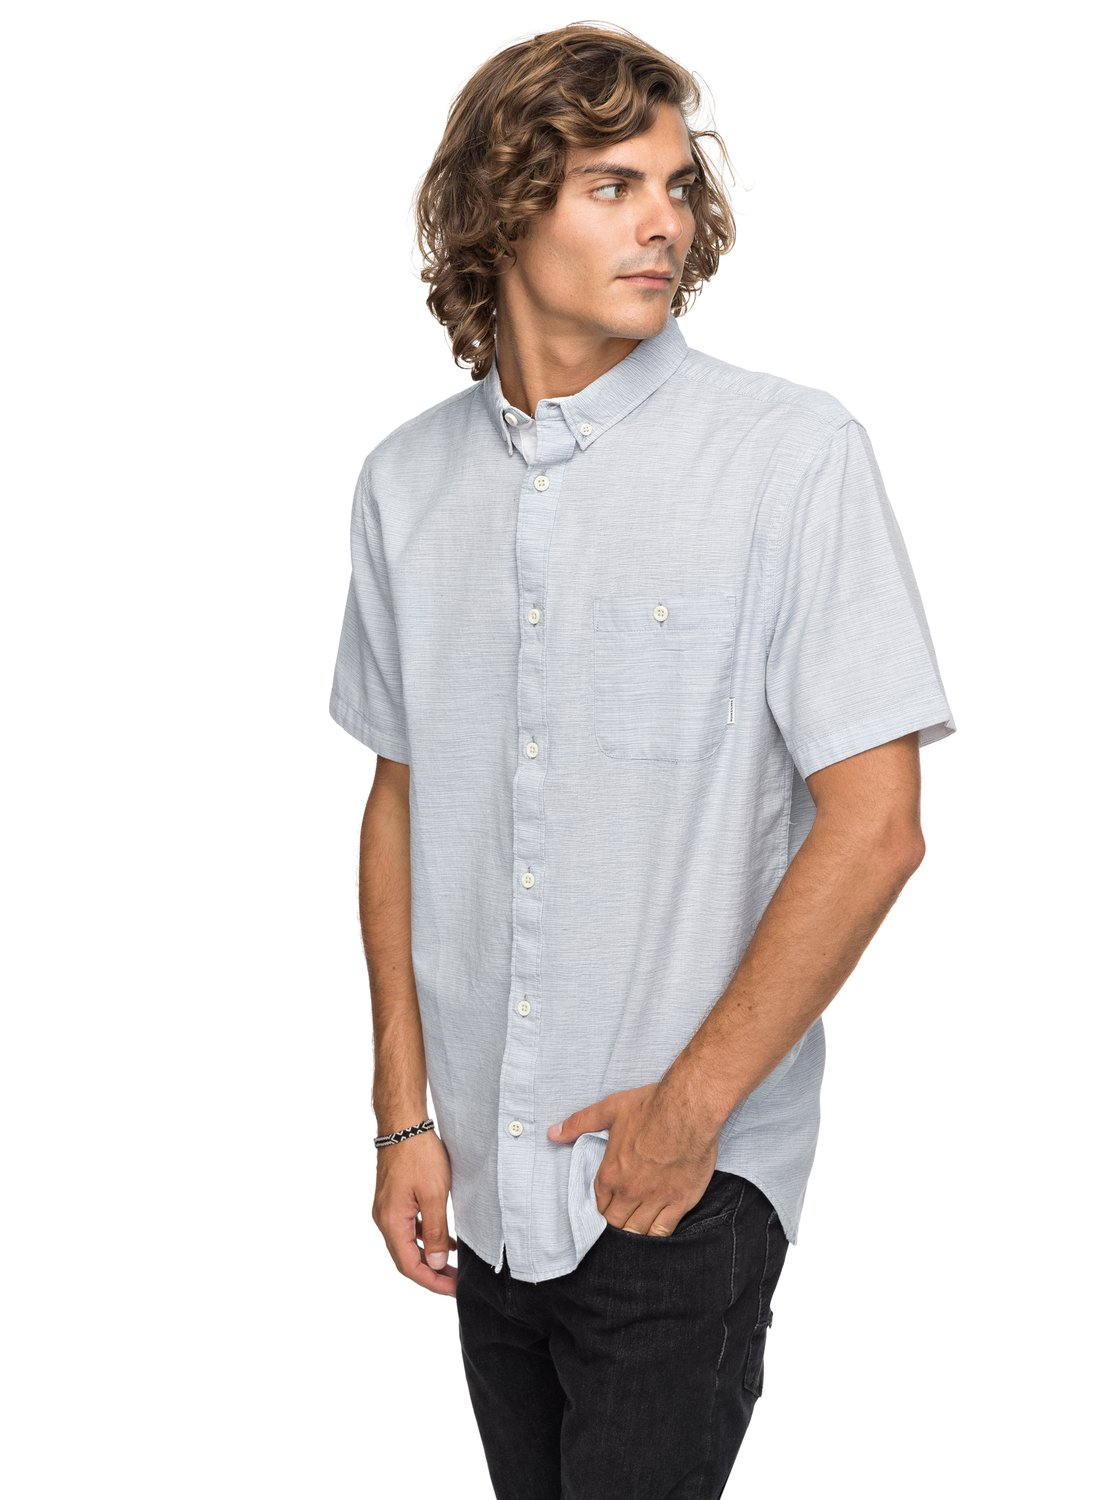 756a9446535 0 Waterfalls Update - Short Sleeve Shirt for Men Blue EQYWT03629 Quiksilver